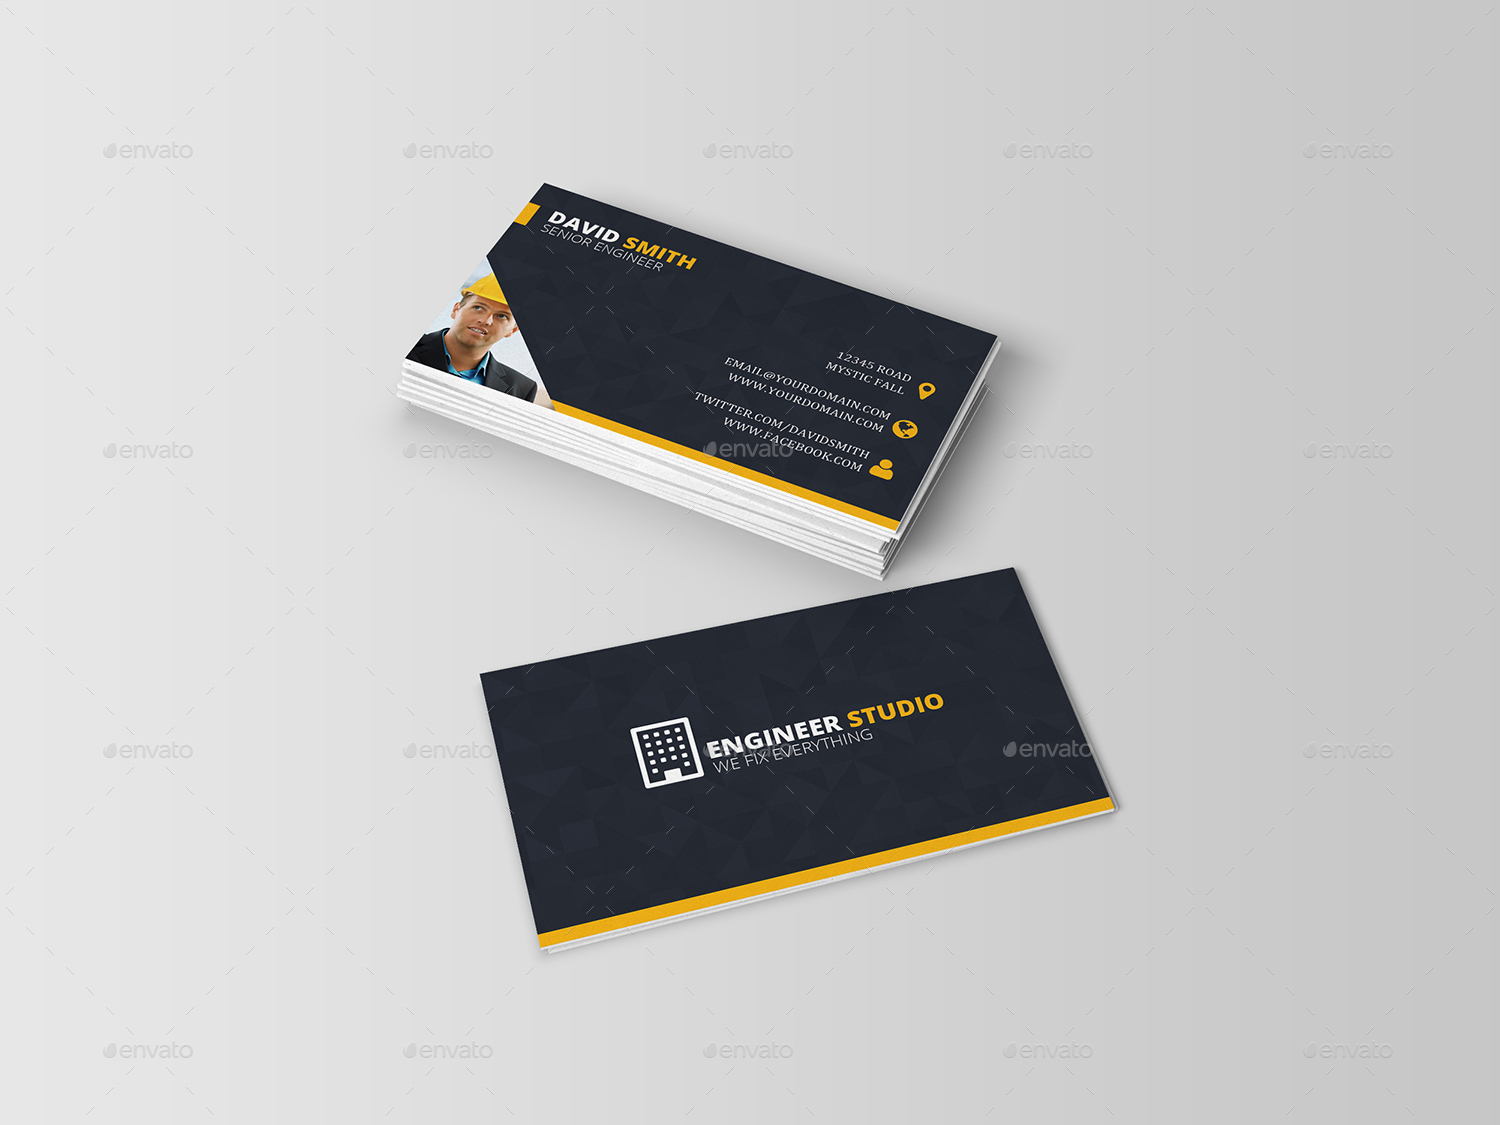 Engineer business card by dutchflow graphicriver engineer business card industry specific business cards 01previewg 02previewg magicingreecefo Image collections